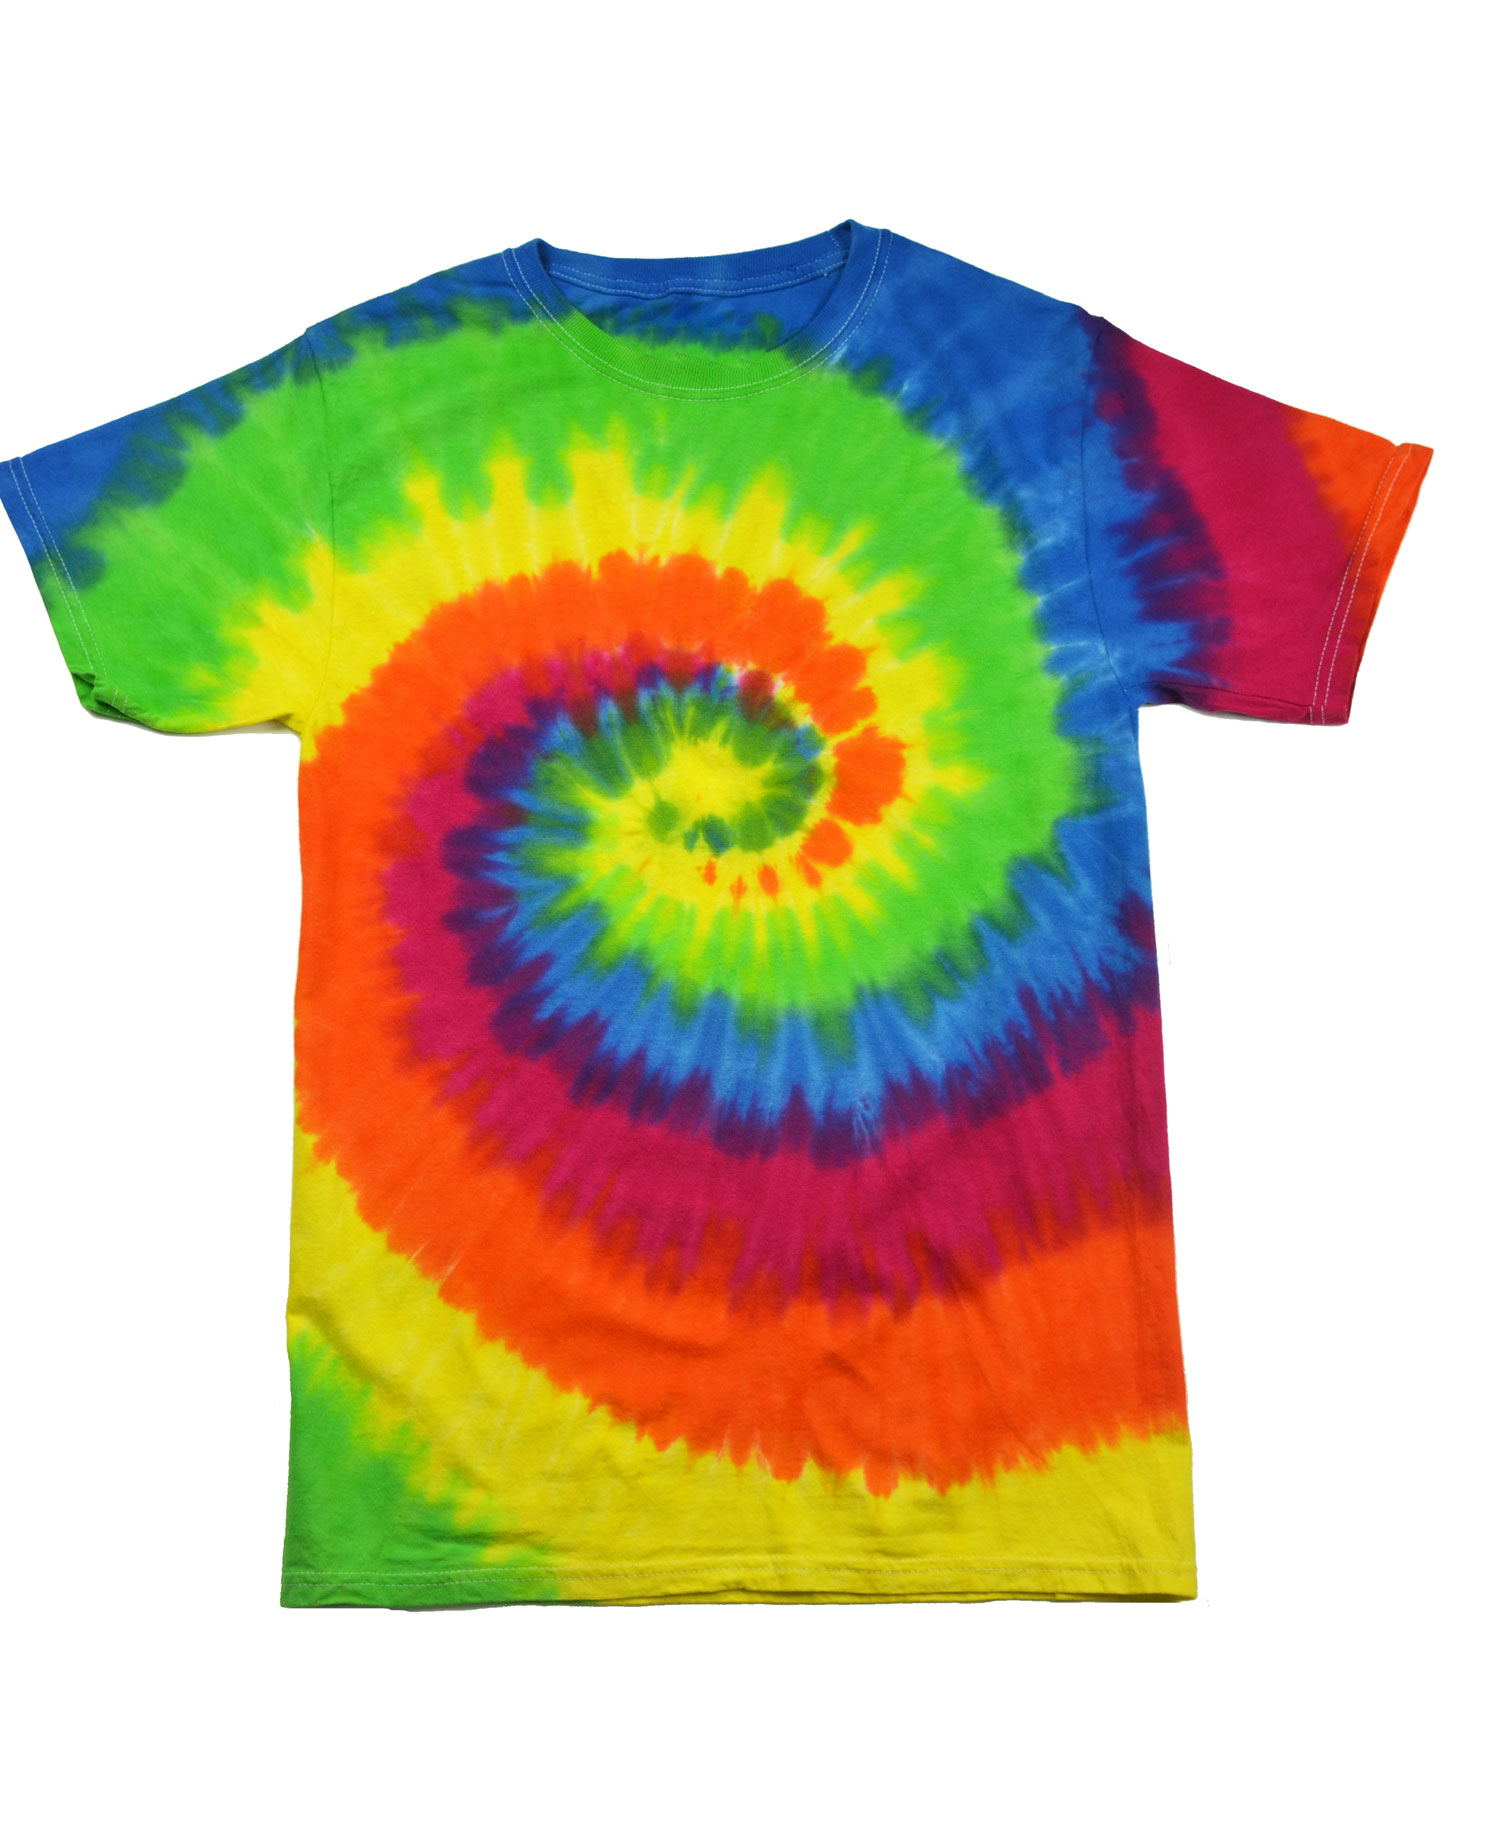 Colortone - T924R Youth Moondance Tie Dye Tee